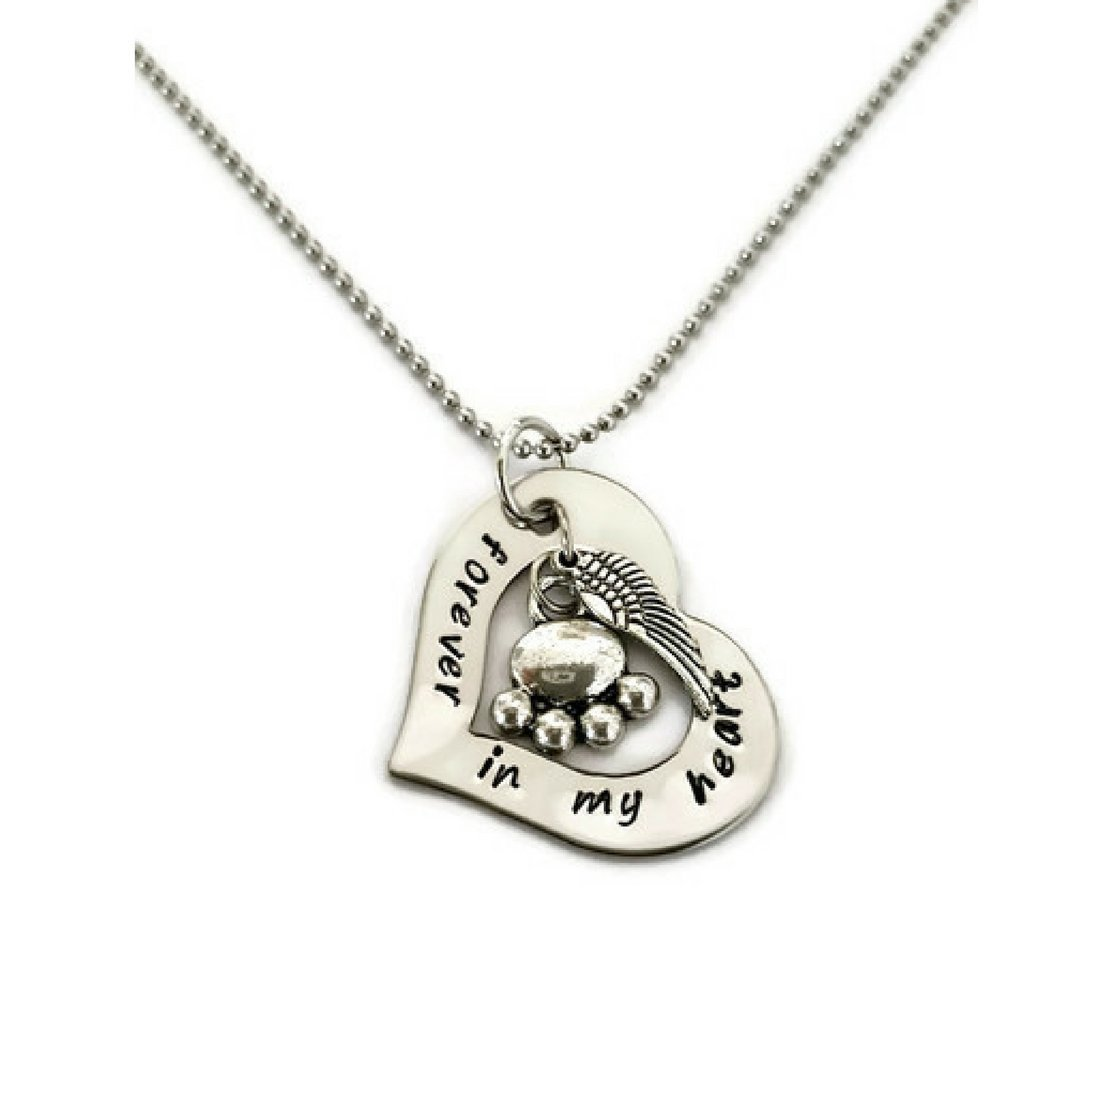 Pet Memorial Necklace, Hand Stamped Necklace for Women or Men